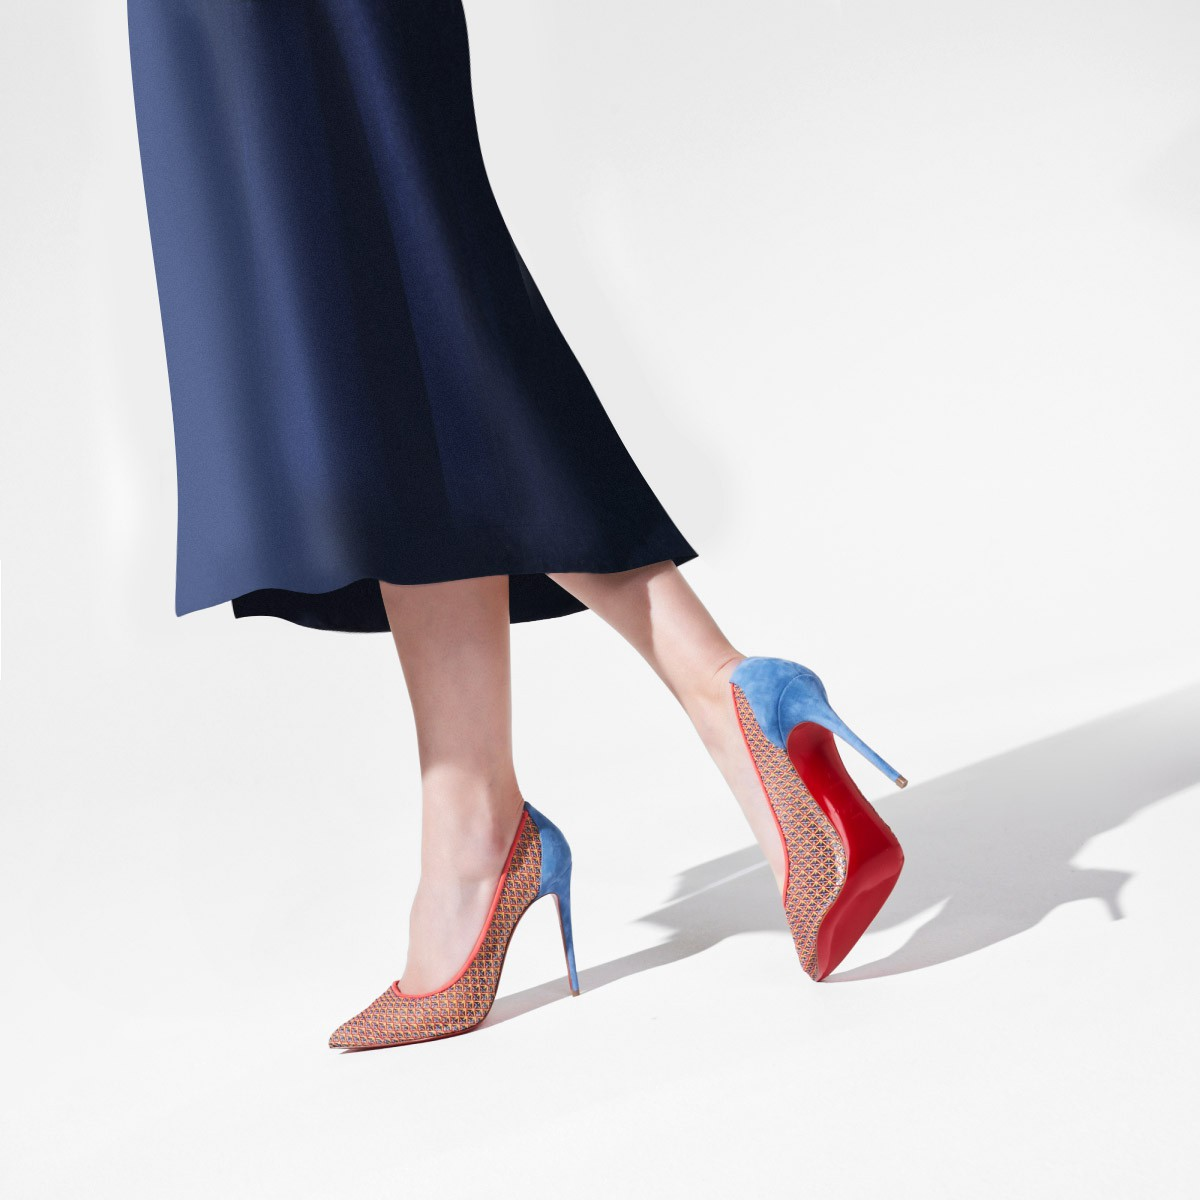 Shoes - Follies Lace - Christian Louboutin